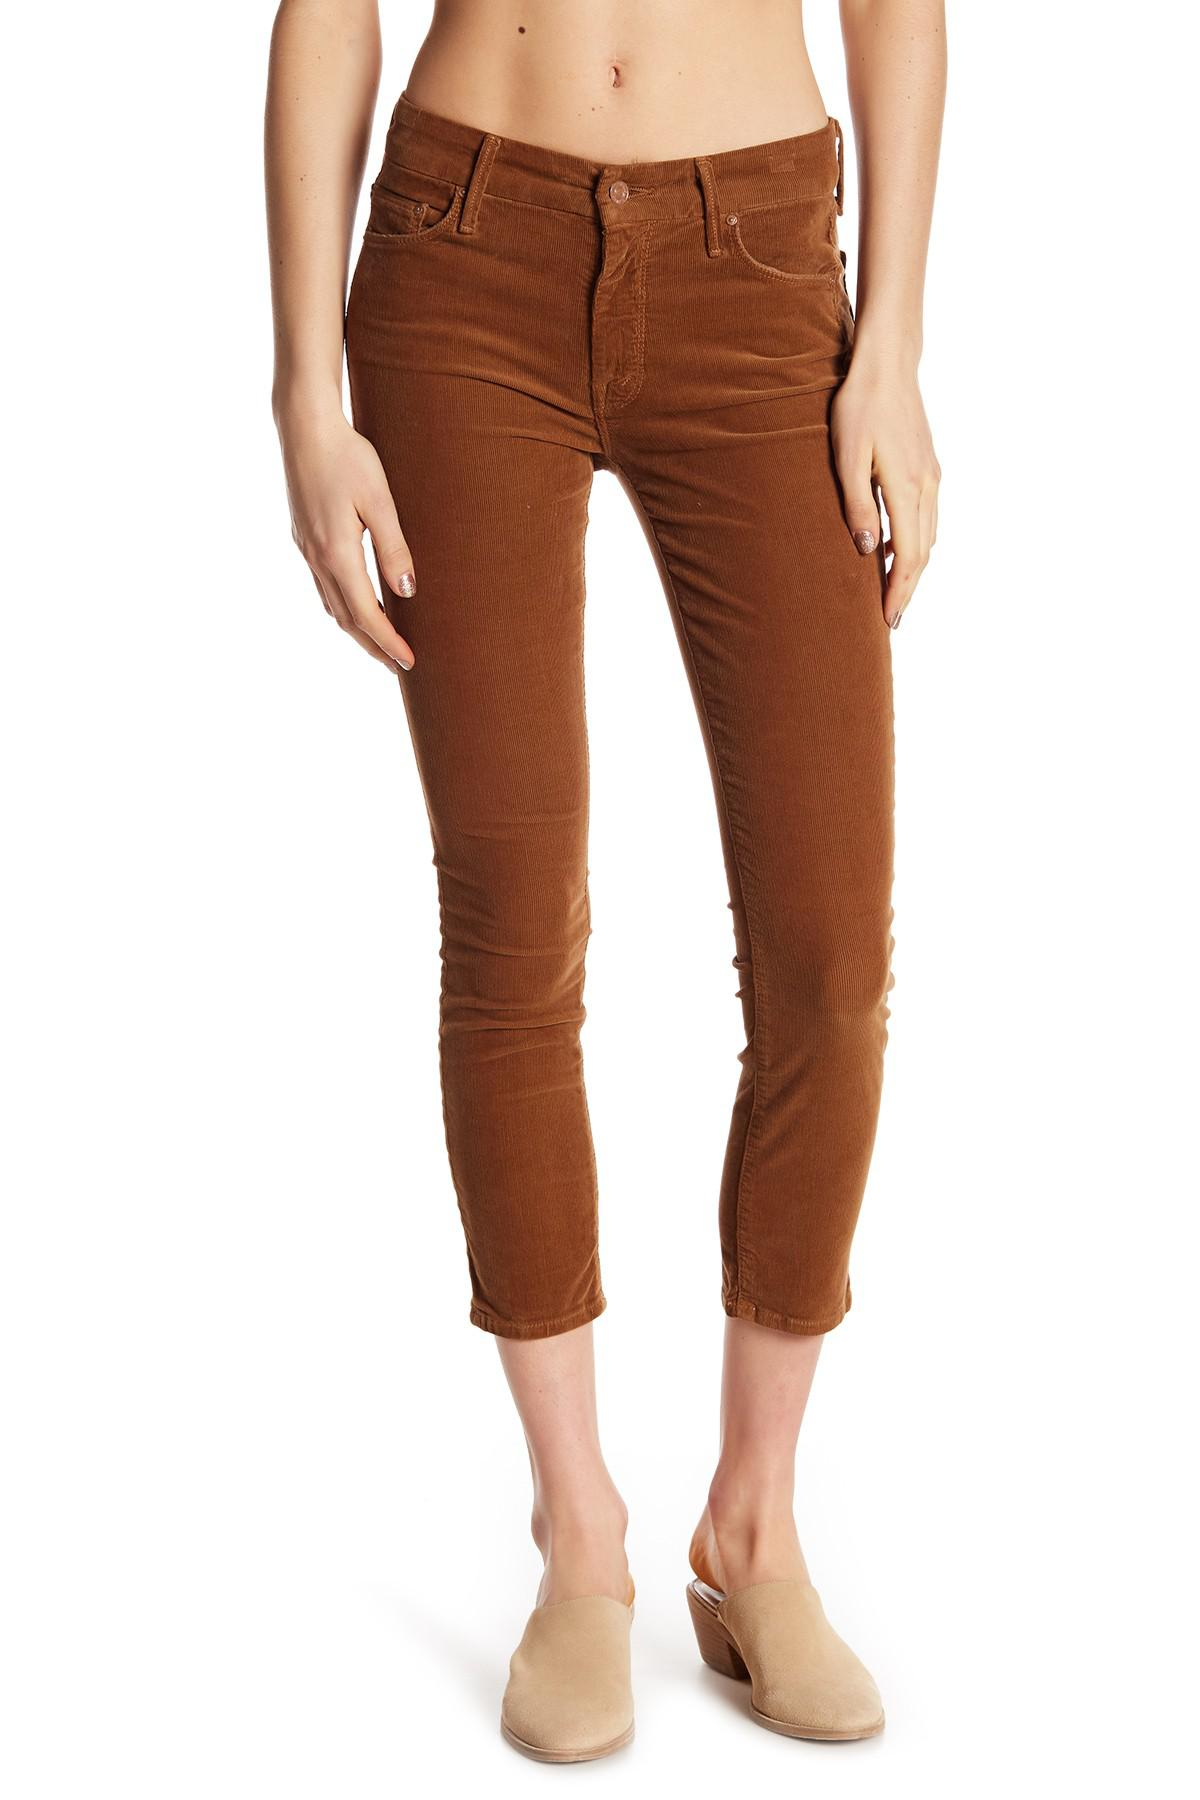 Mother Mid-Rise The Looker Prep Scoop Skinny Pants Cheap Sale With Mastercard aLHjBUJ